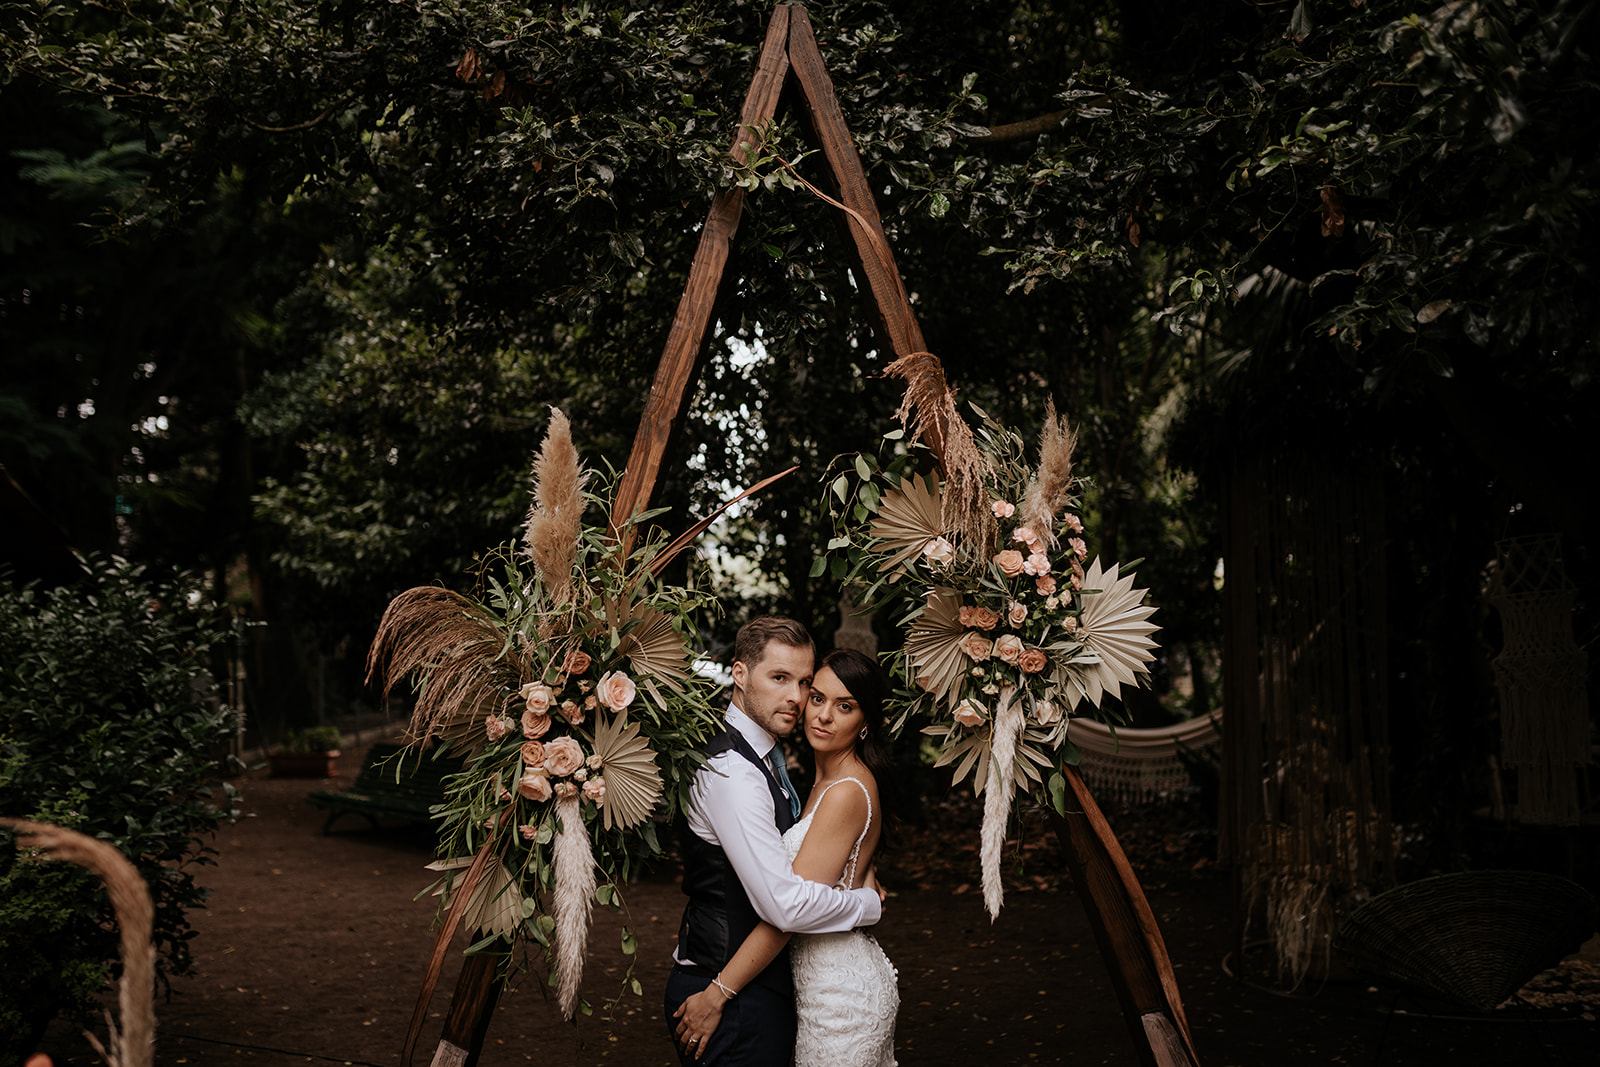 Vero & Josh, Boho Style Wedding at Casa Baudet